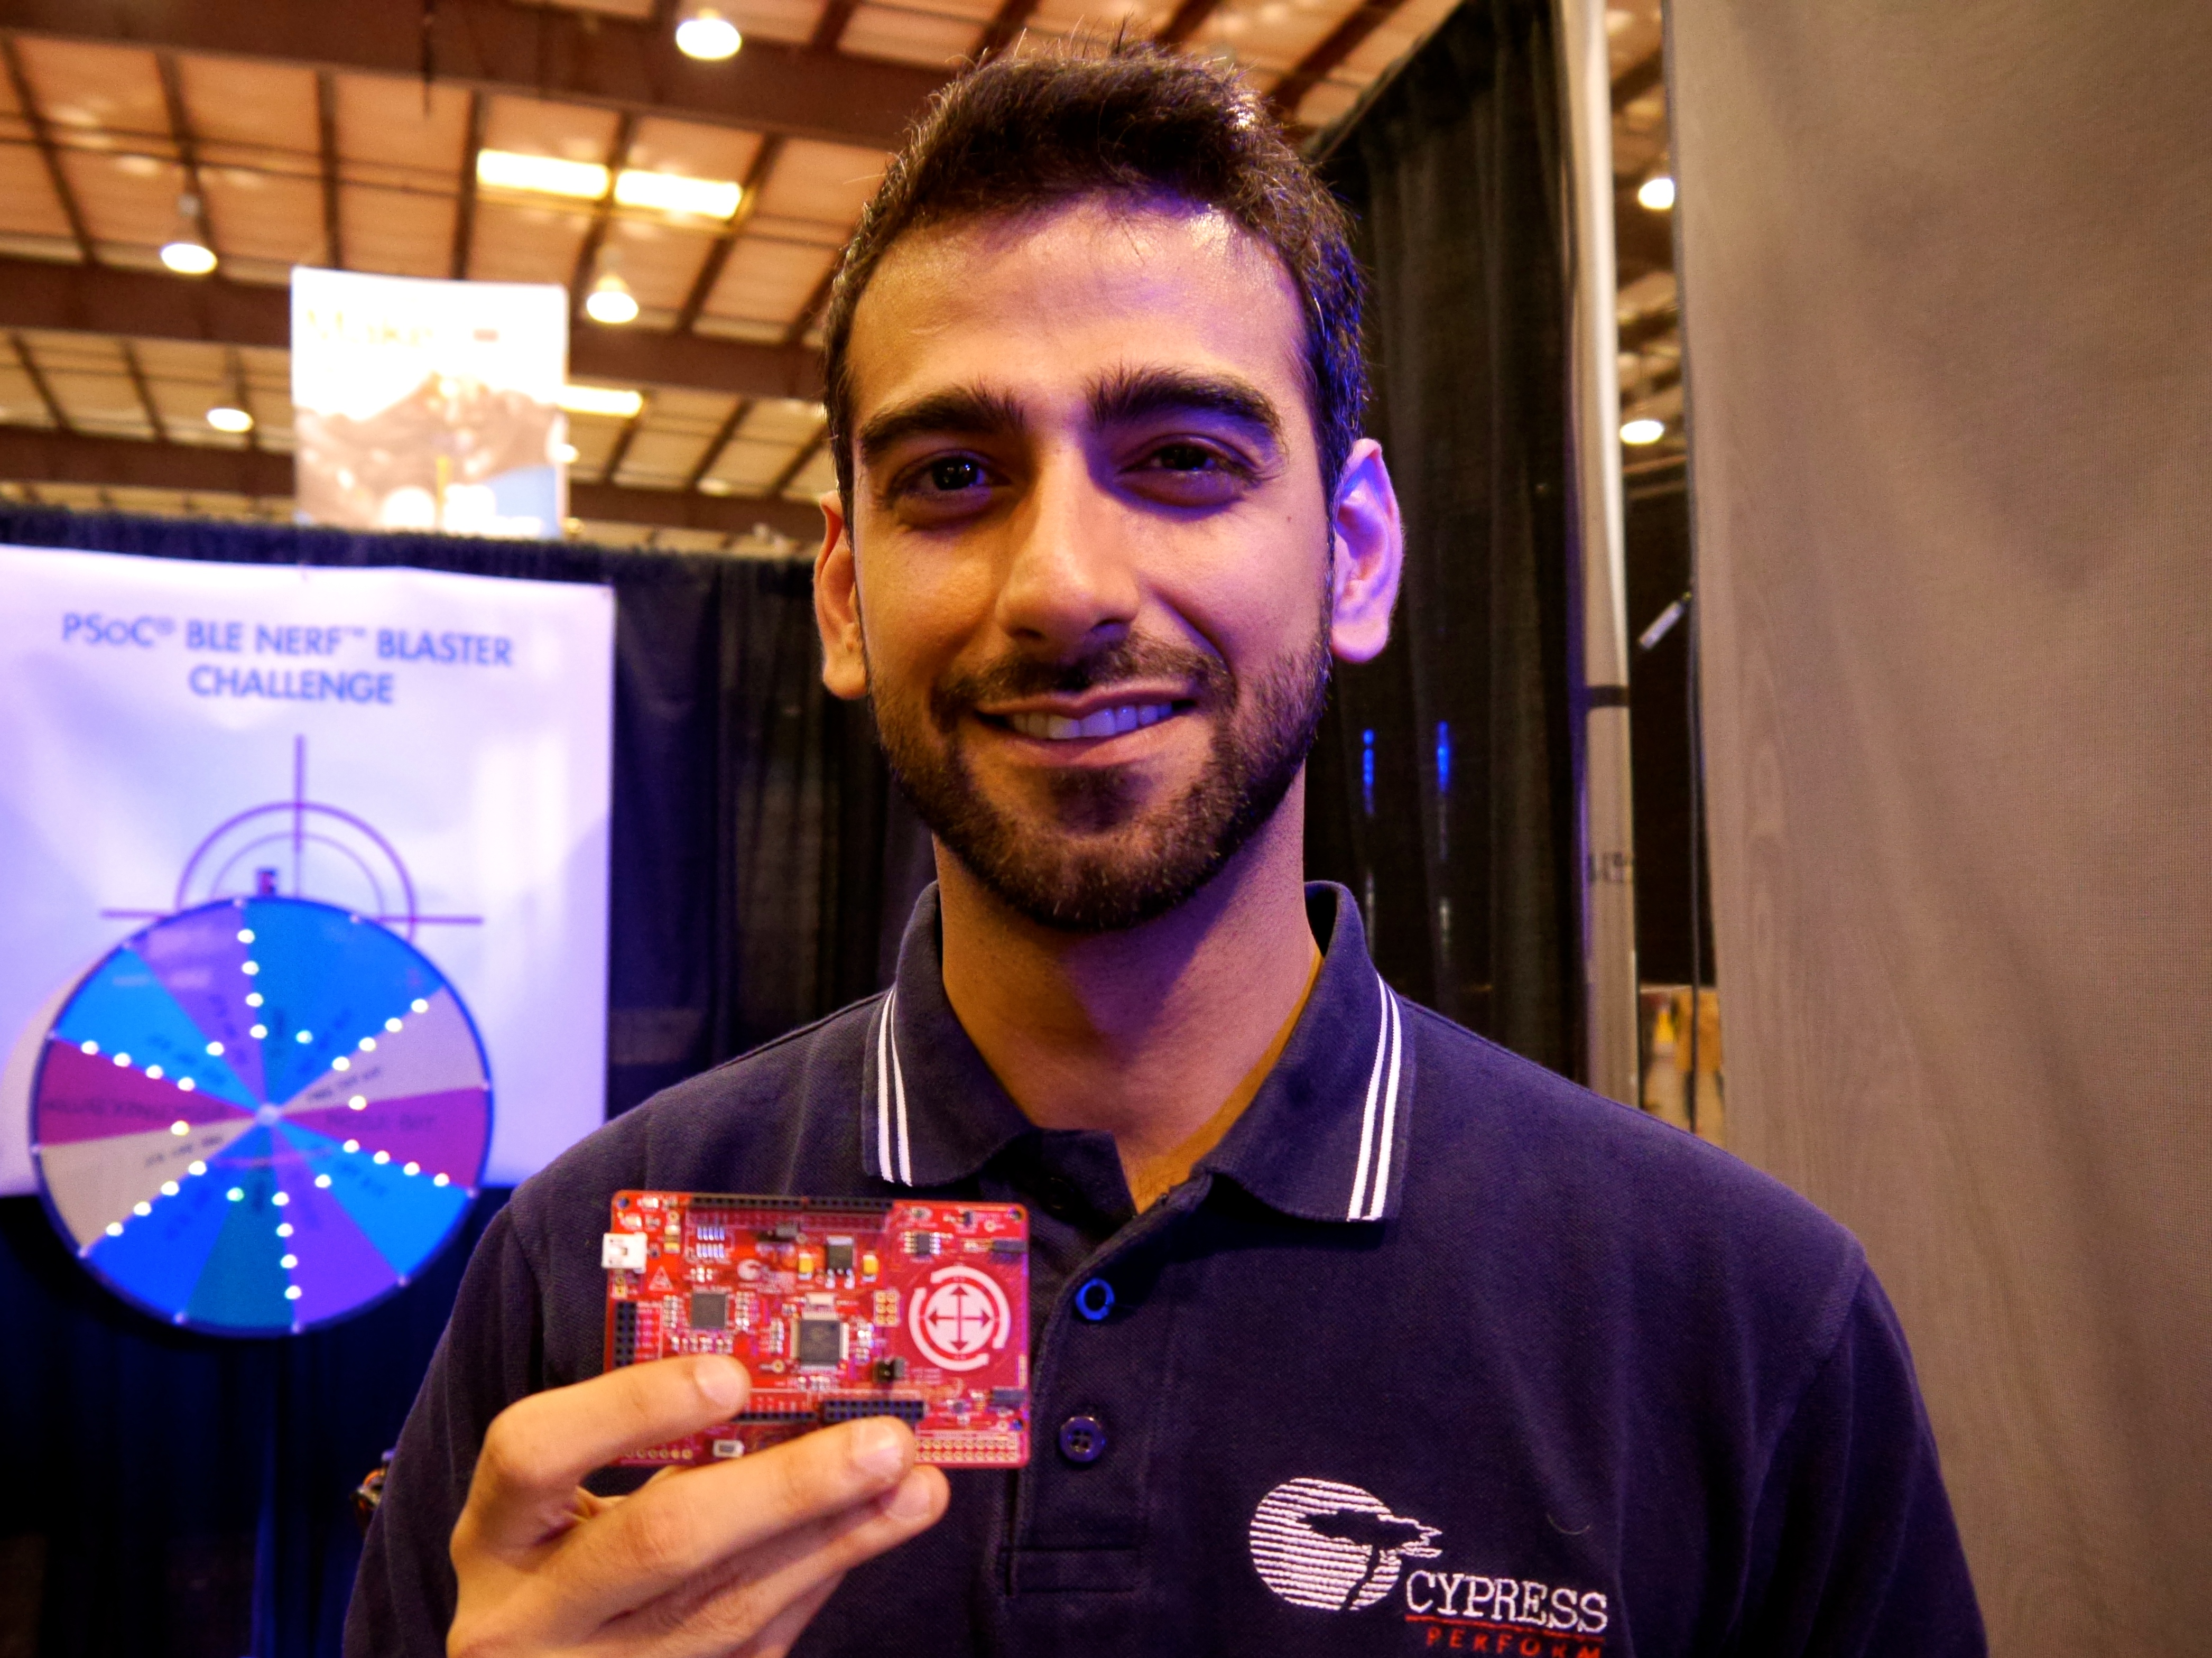 Building Projects with Cypress PSoC